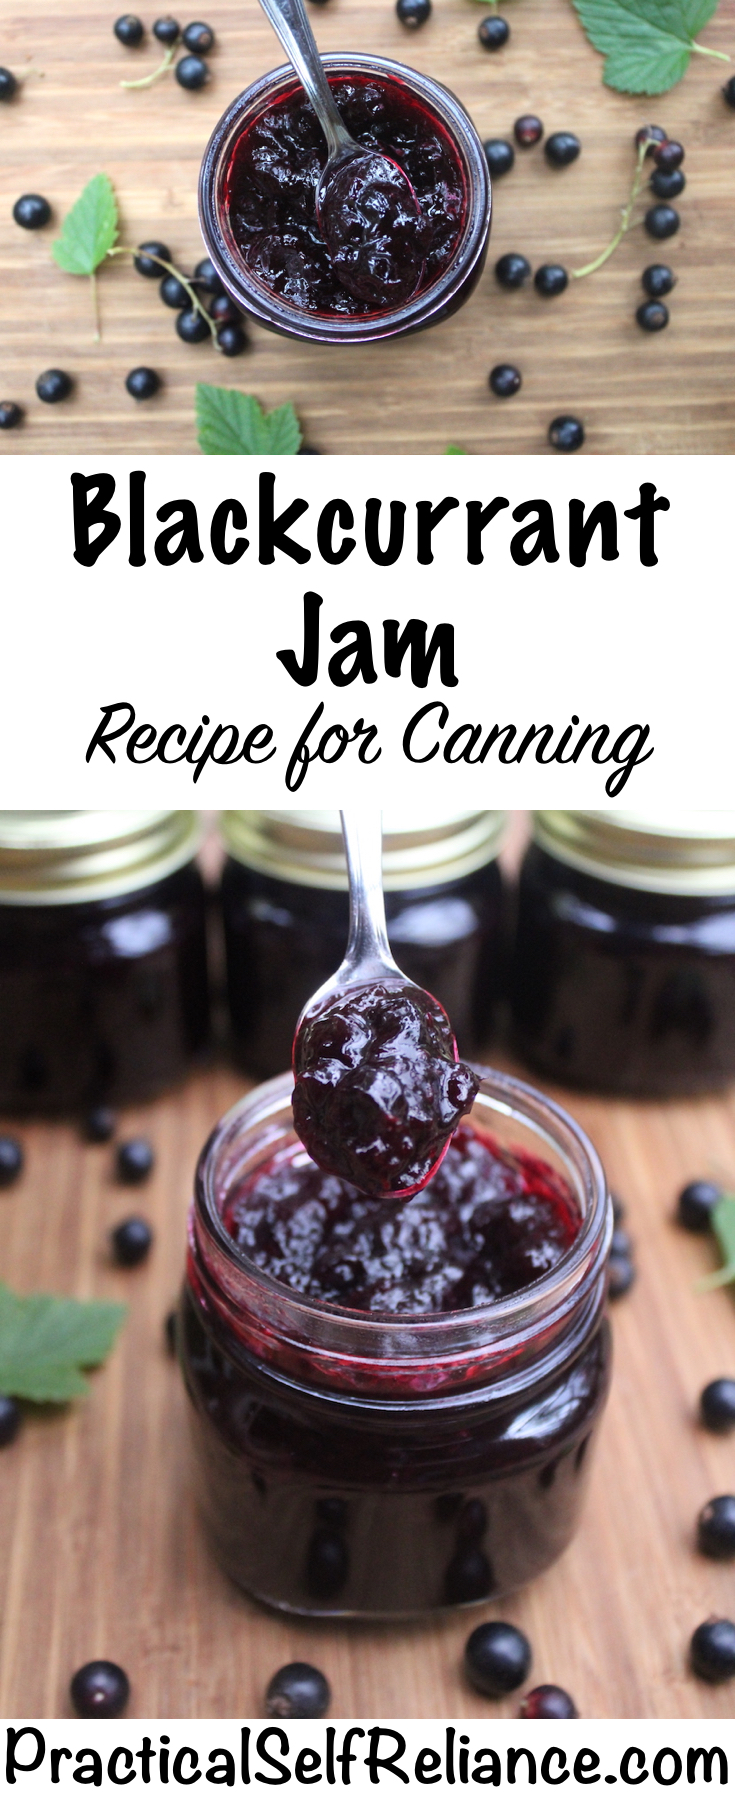 Blackcurrant Jam Recipe for Canning